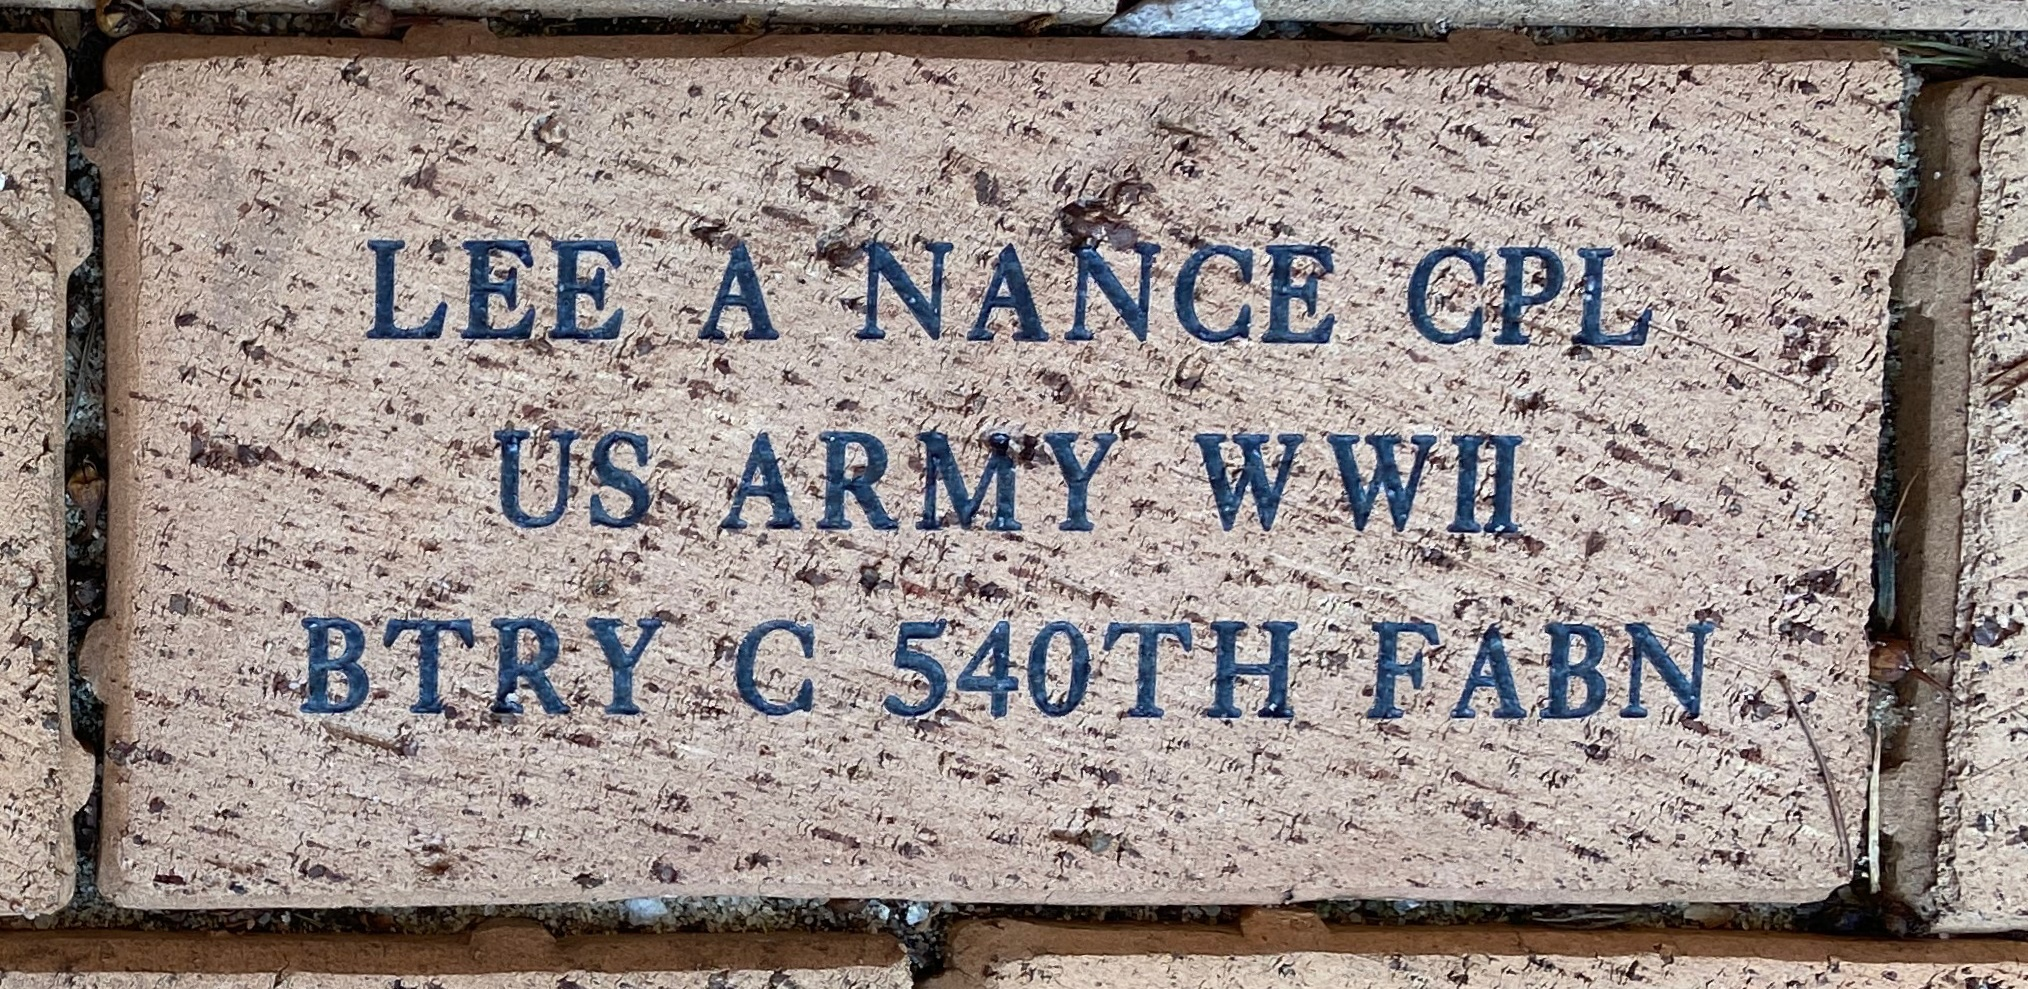 LEE A NANCE CPL US ARMY WWII BTRY C 540TH FABN